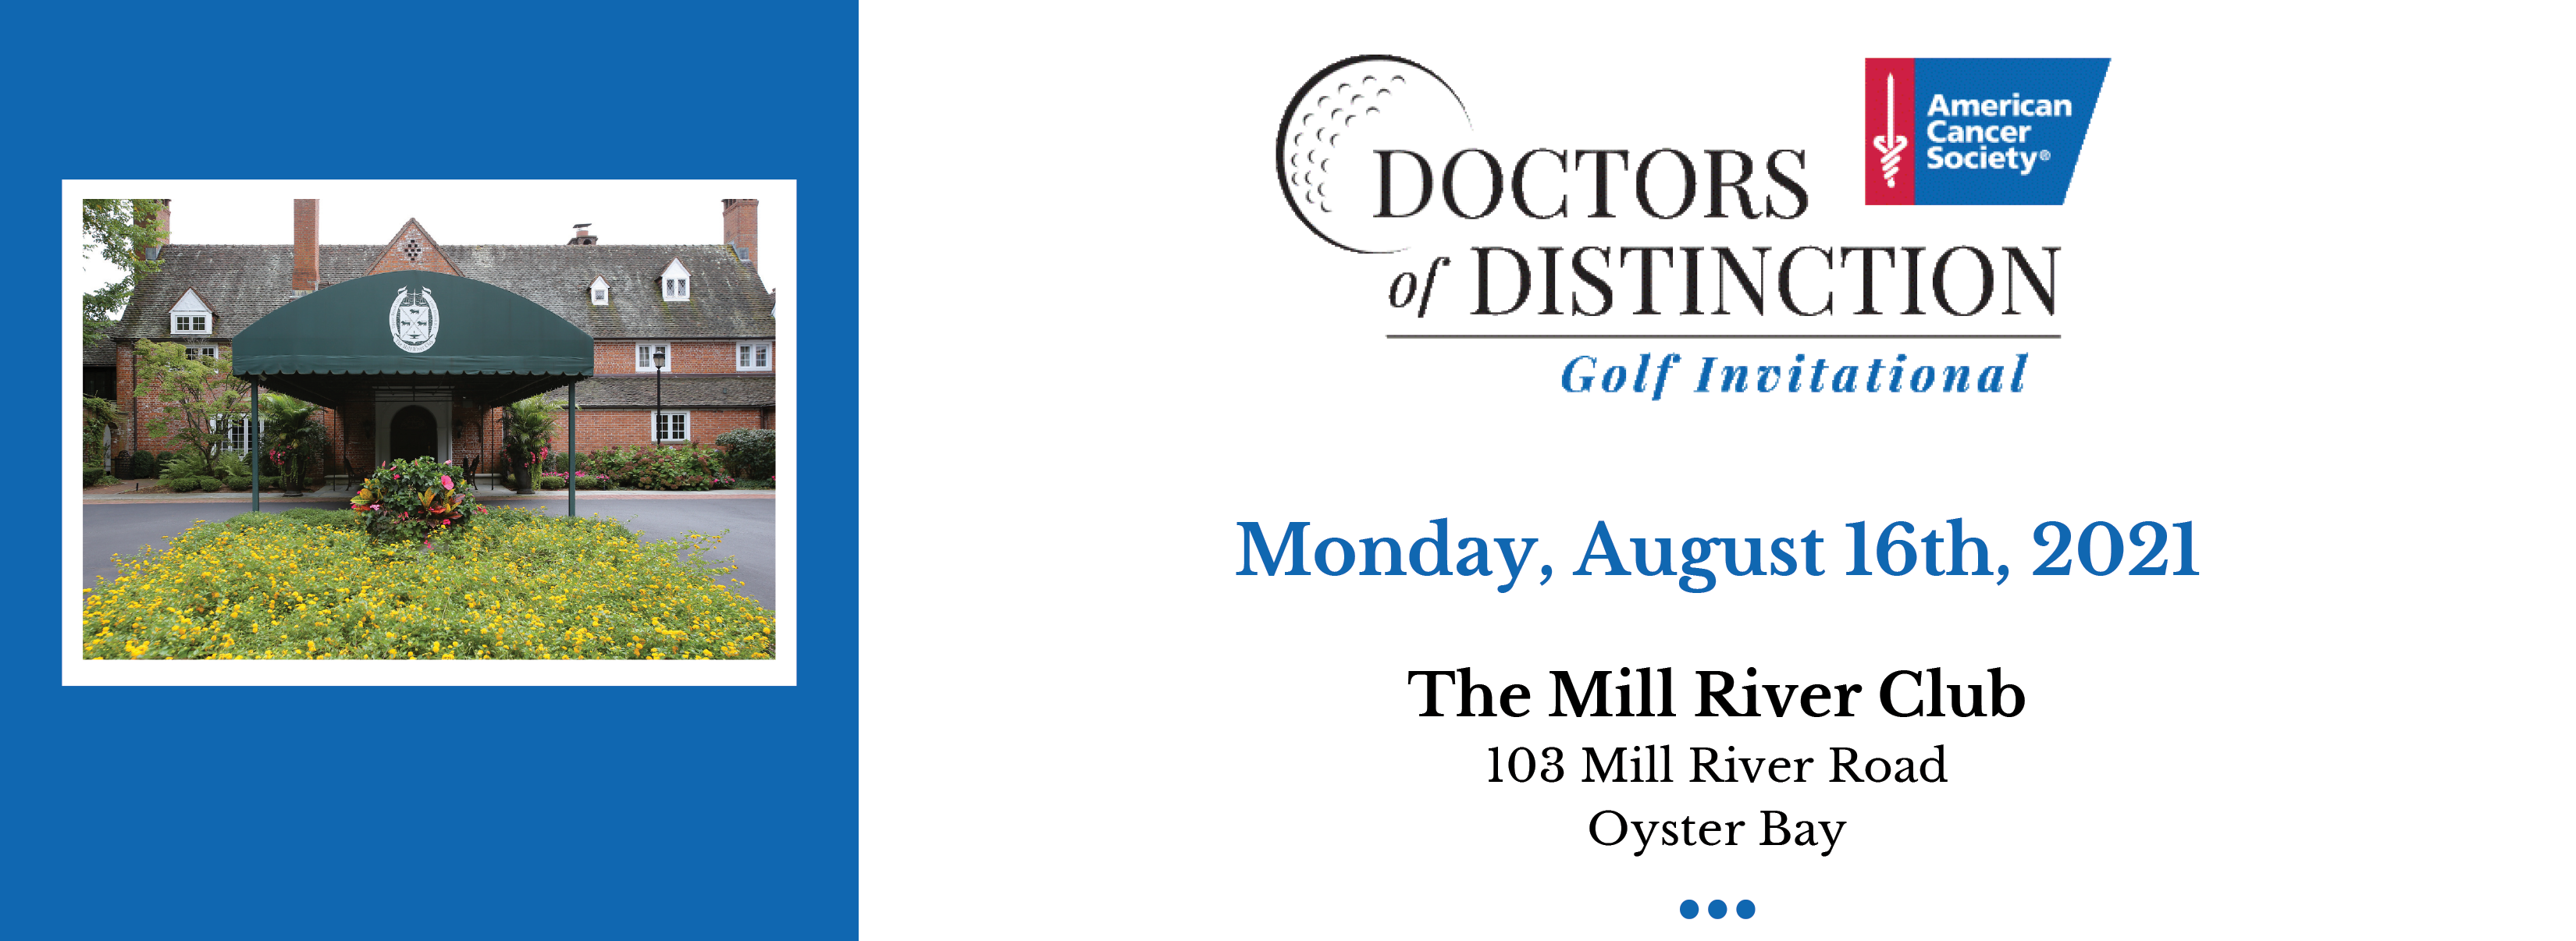 2021 DOD header image. Blue side square image of Mill River Club and the Doctors of Distinction logo with event details: Monday, August 16th, 2021 To secure your foursome, purchase a journal ad or tee sign, or for more information please visit: D octorsofDistinctionGolf.org The Mill River Club 103 Mill River Road Oyster Bay